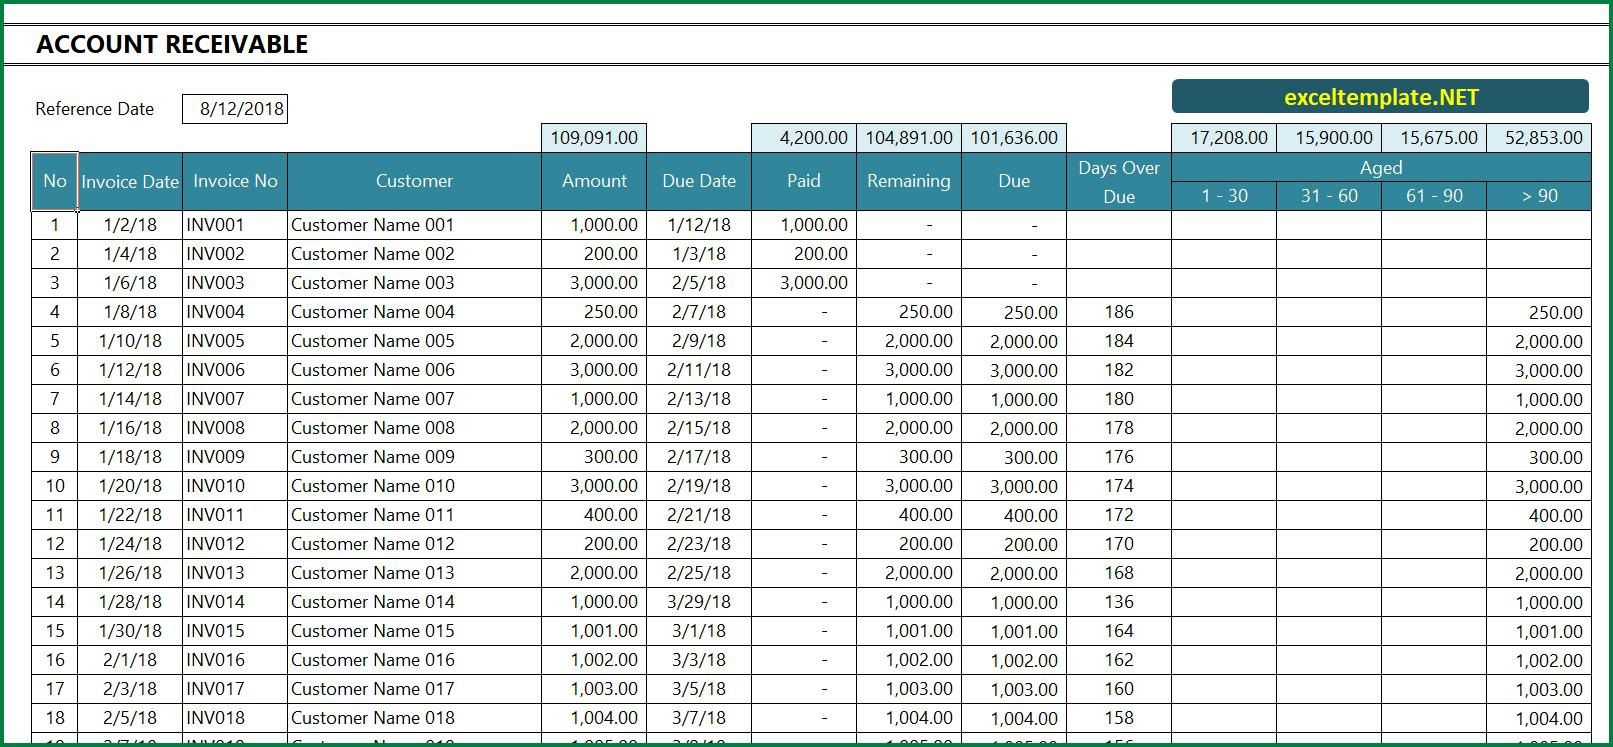 003 Unbelievable Account Receivable Excel Spreadsheet Template Design  Management Dashboard FreeFull